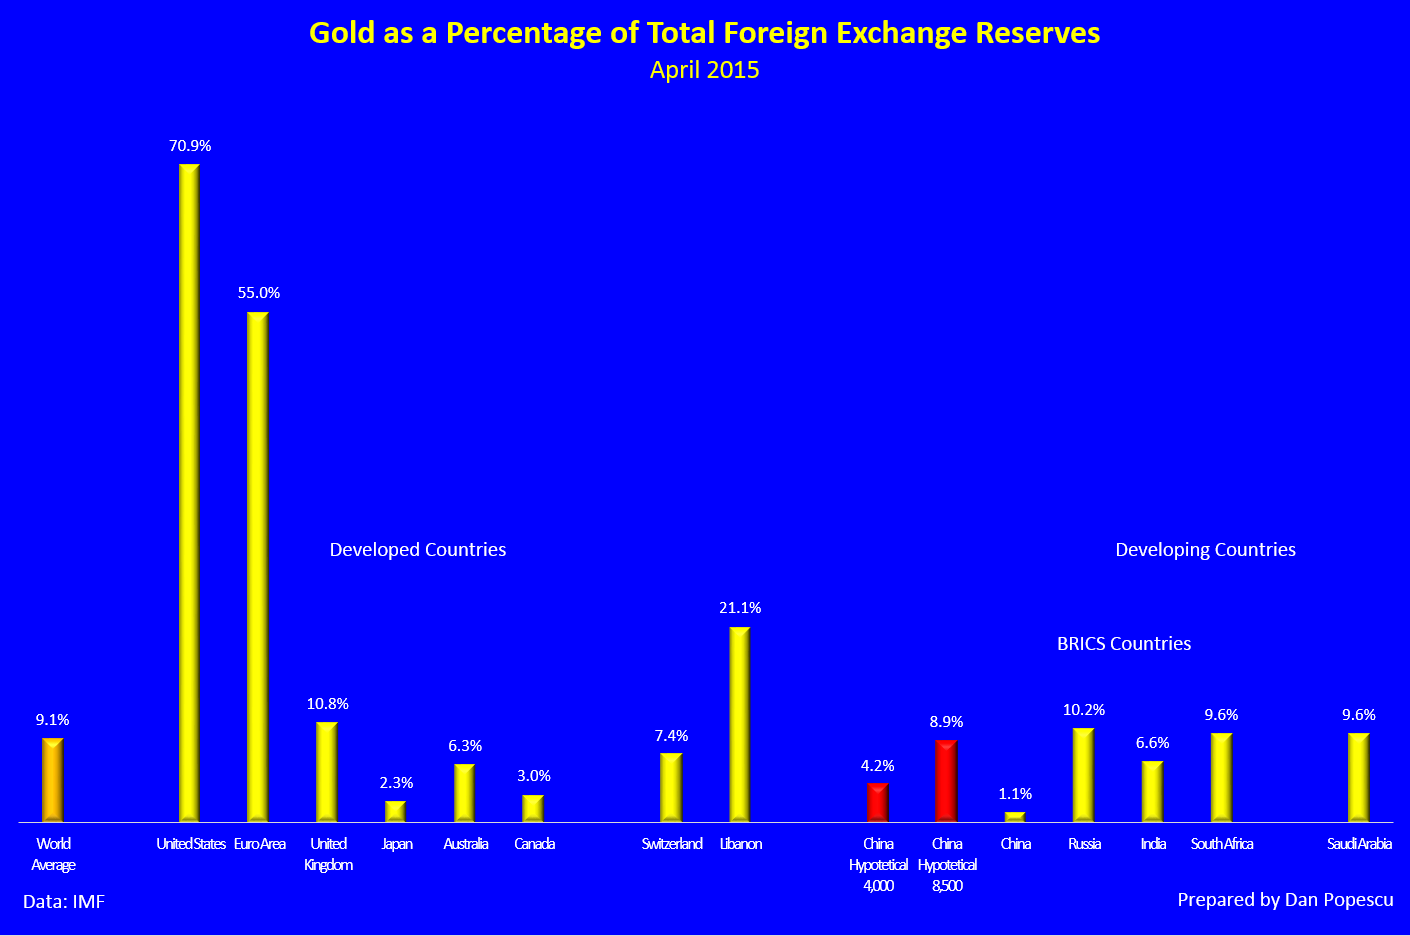 Gold as a Percentage of Total Foreign Exchange Reserves